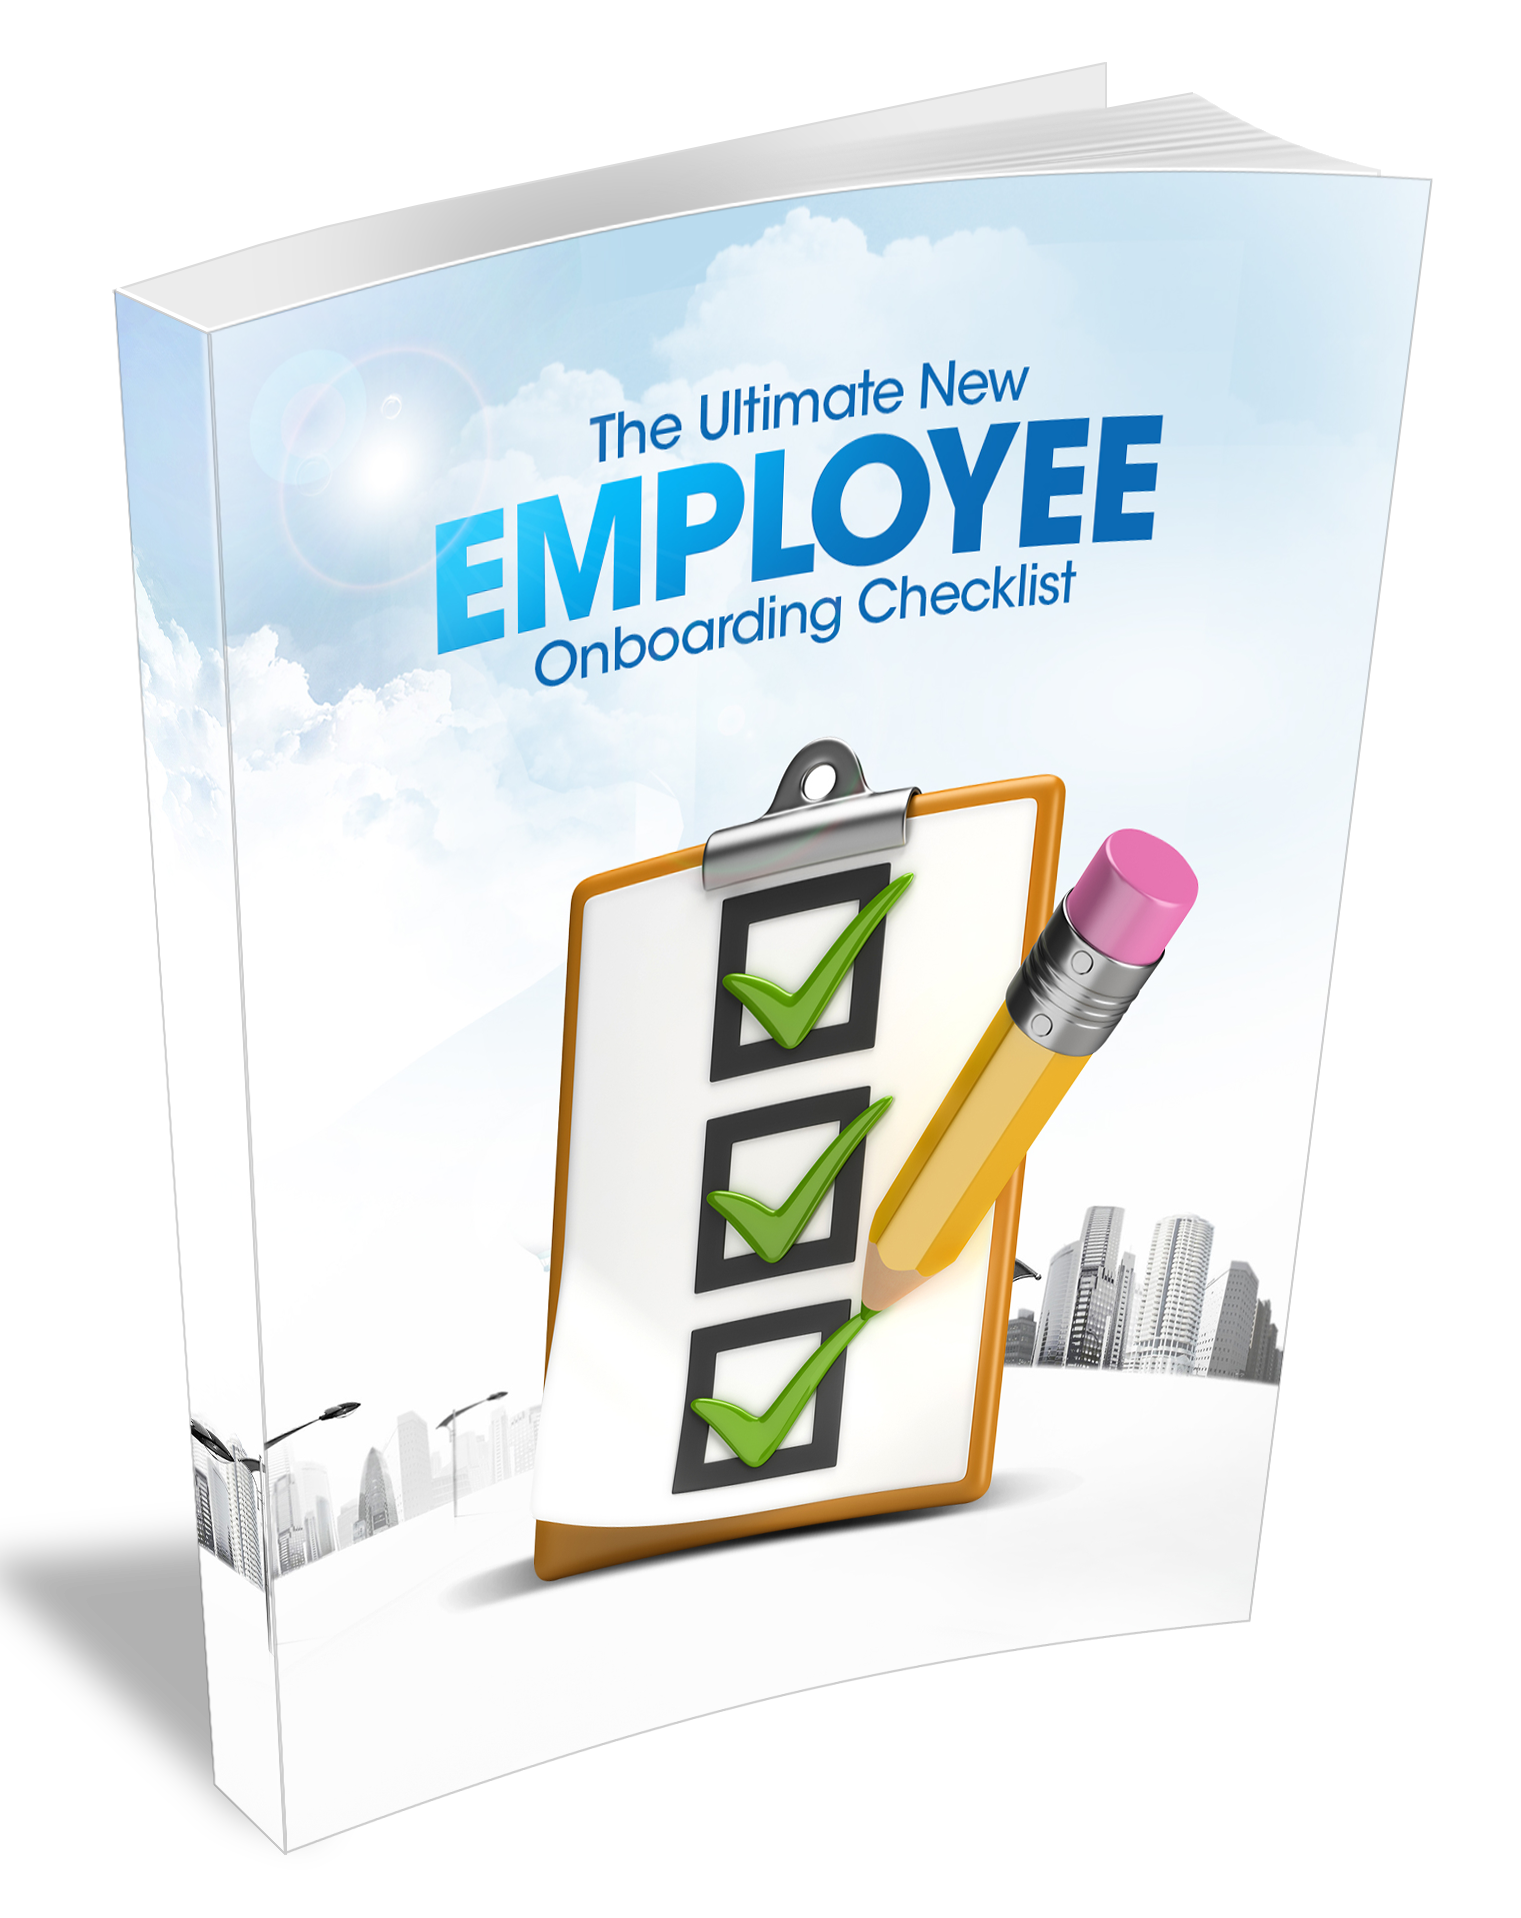 The Ultimate New Employee Onboarding Checklist by TINYpulse